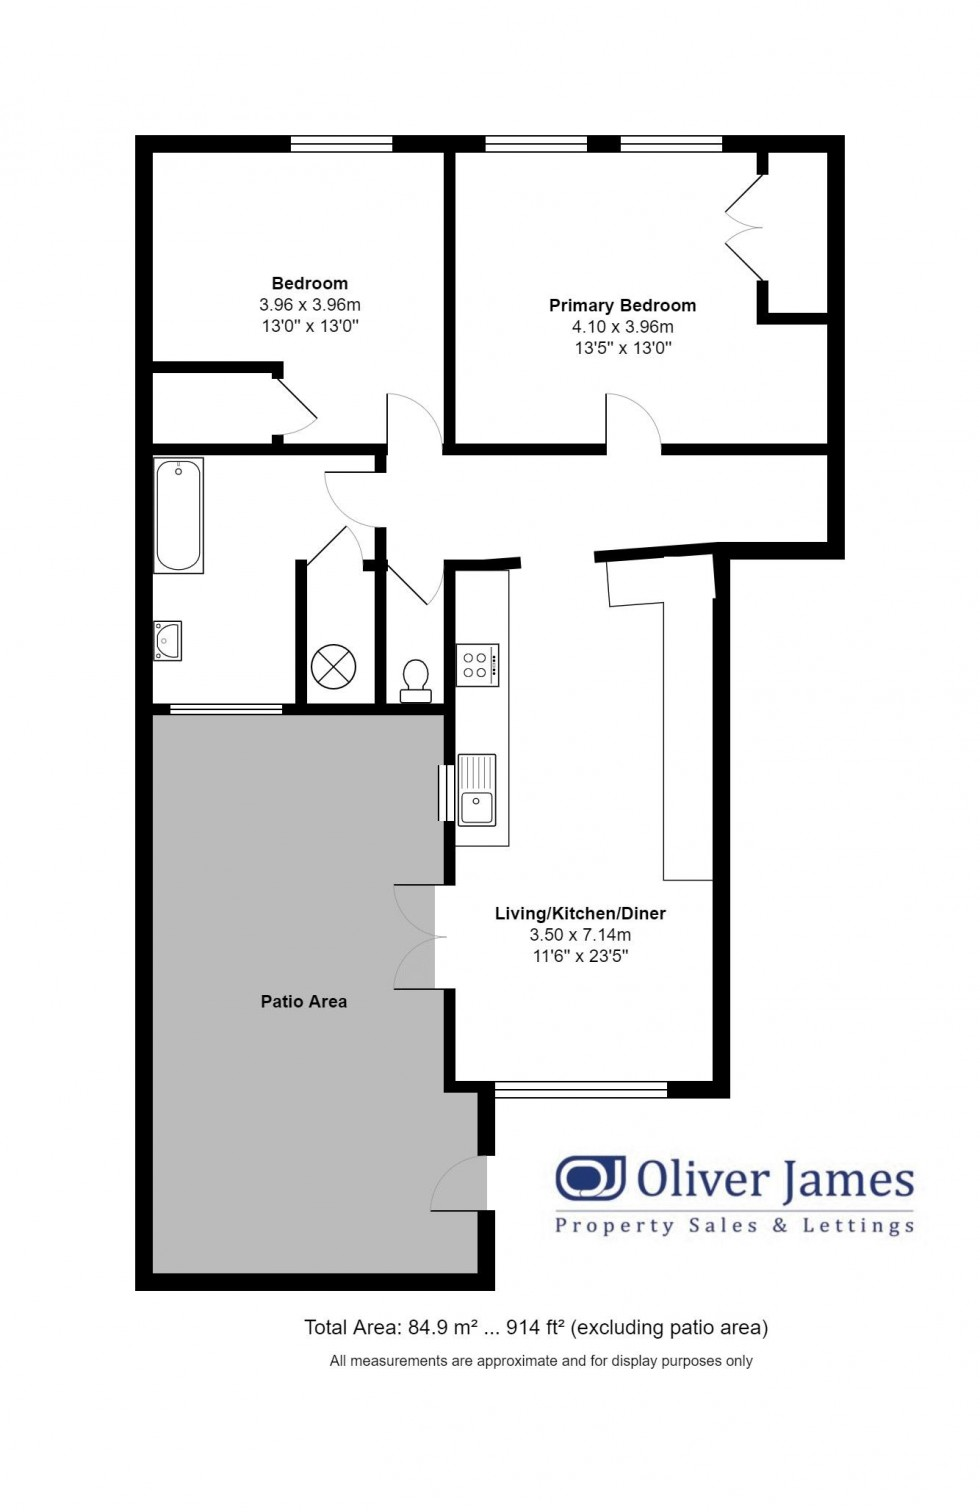 Floorplan for Great Whyte, Ramsey Cambridgeshire.